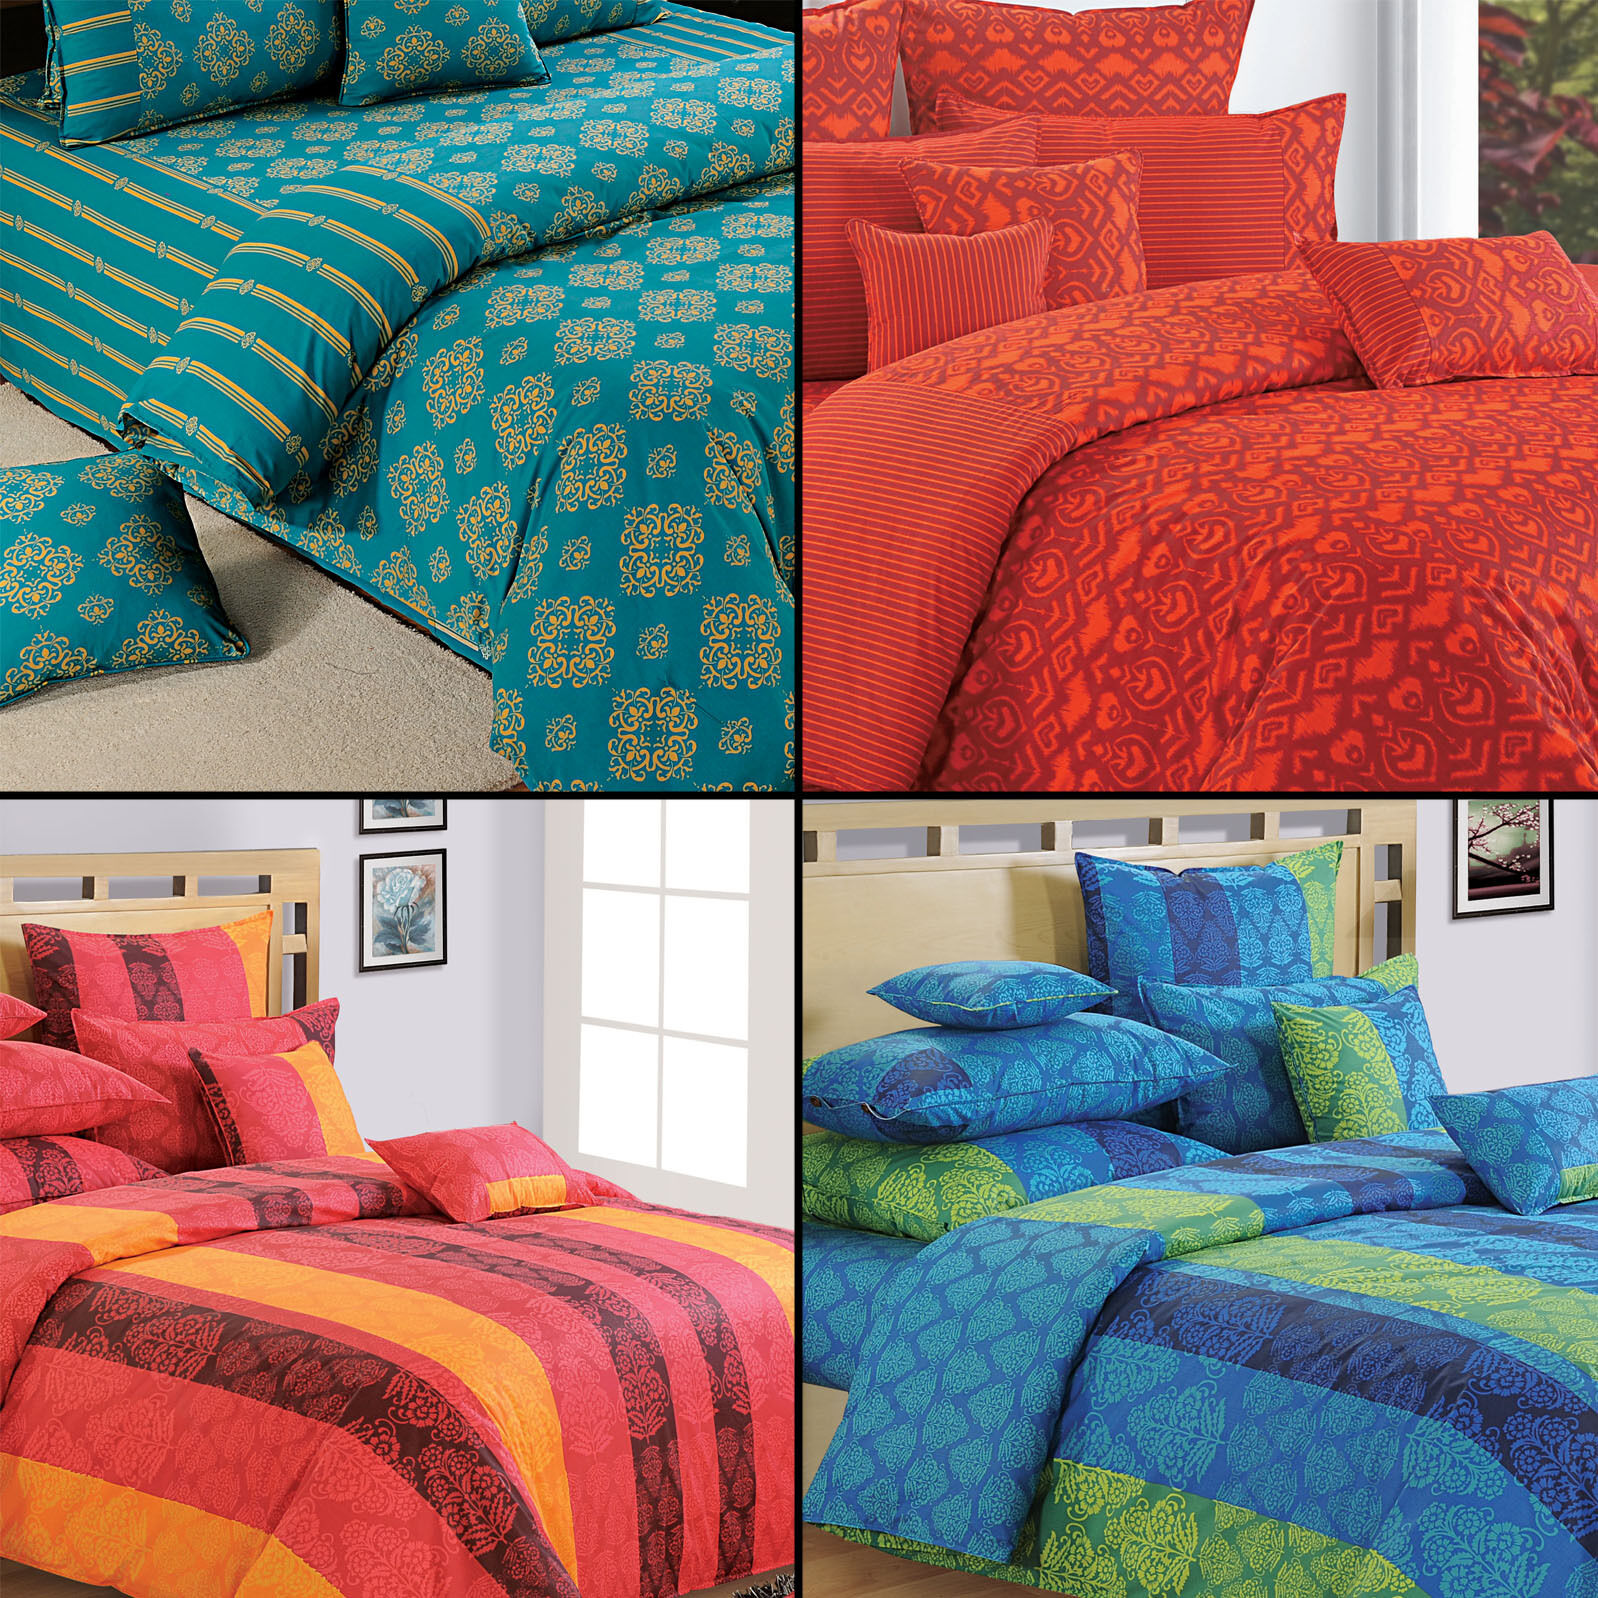 100% Cotton Twin Queen King Dimensione Decorative Duvet Cover with Pillow Cover-8120